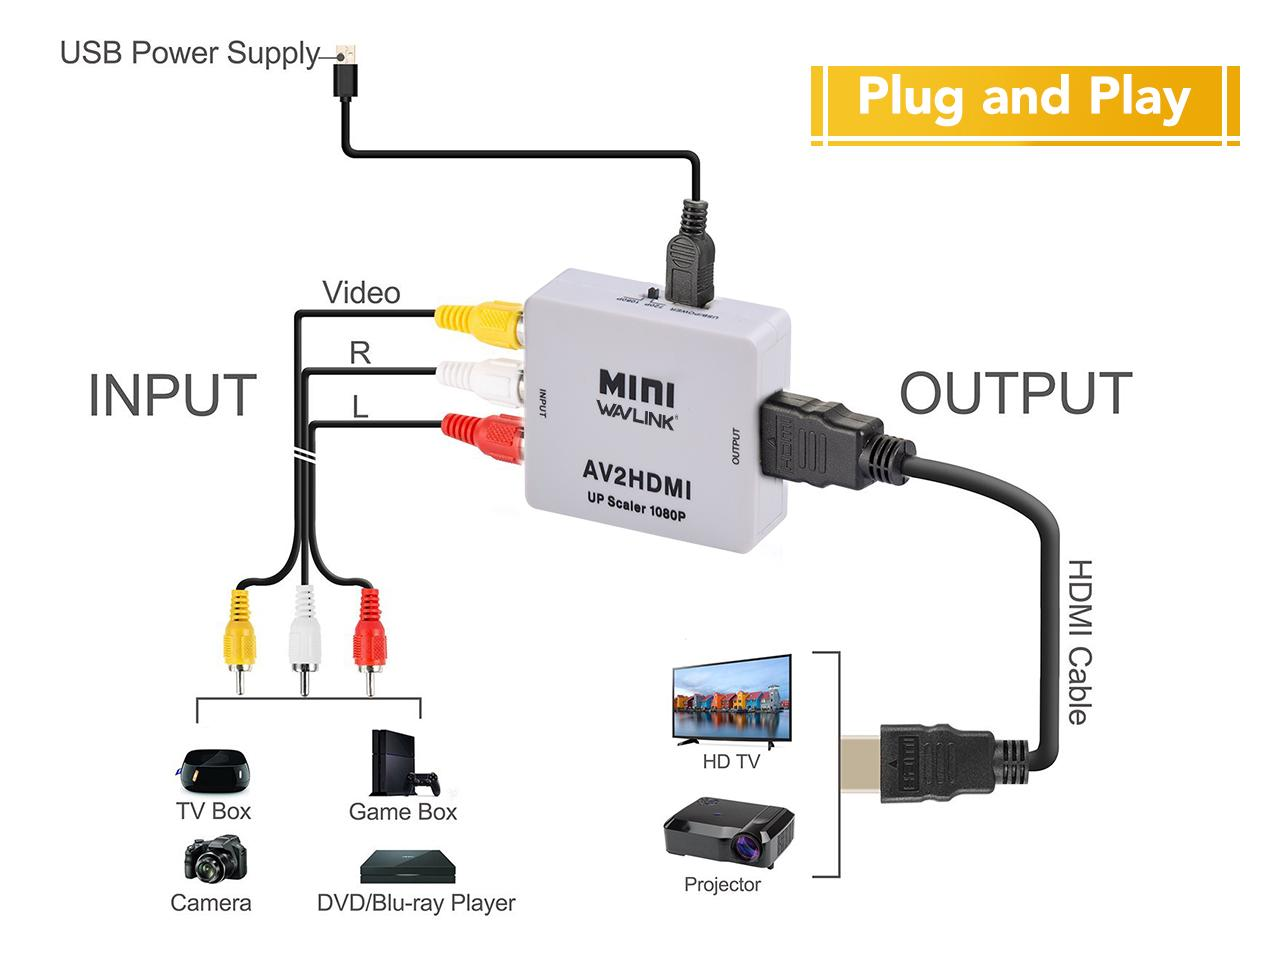 hdmi to rca wiring diagram nissan almera tino stereo connect sega mega drive 2 smart tv arqade wise i don t think you ll gain much benefit by using one of these methods over the other maybe a bit cleaner an image via connector